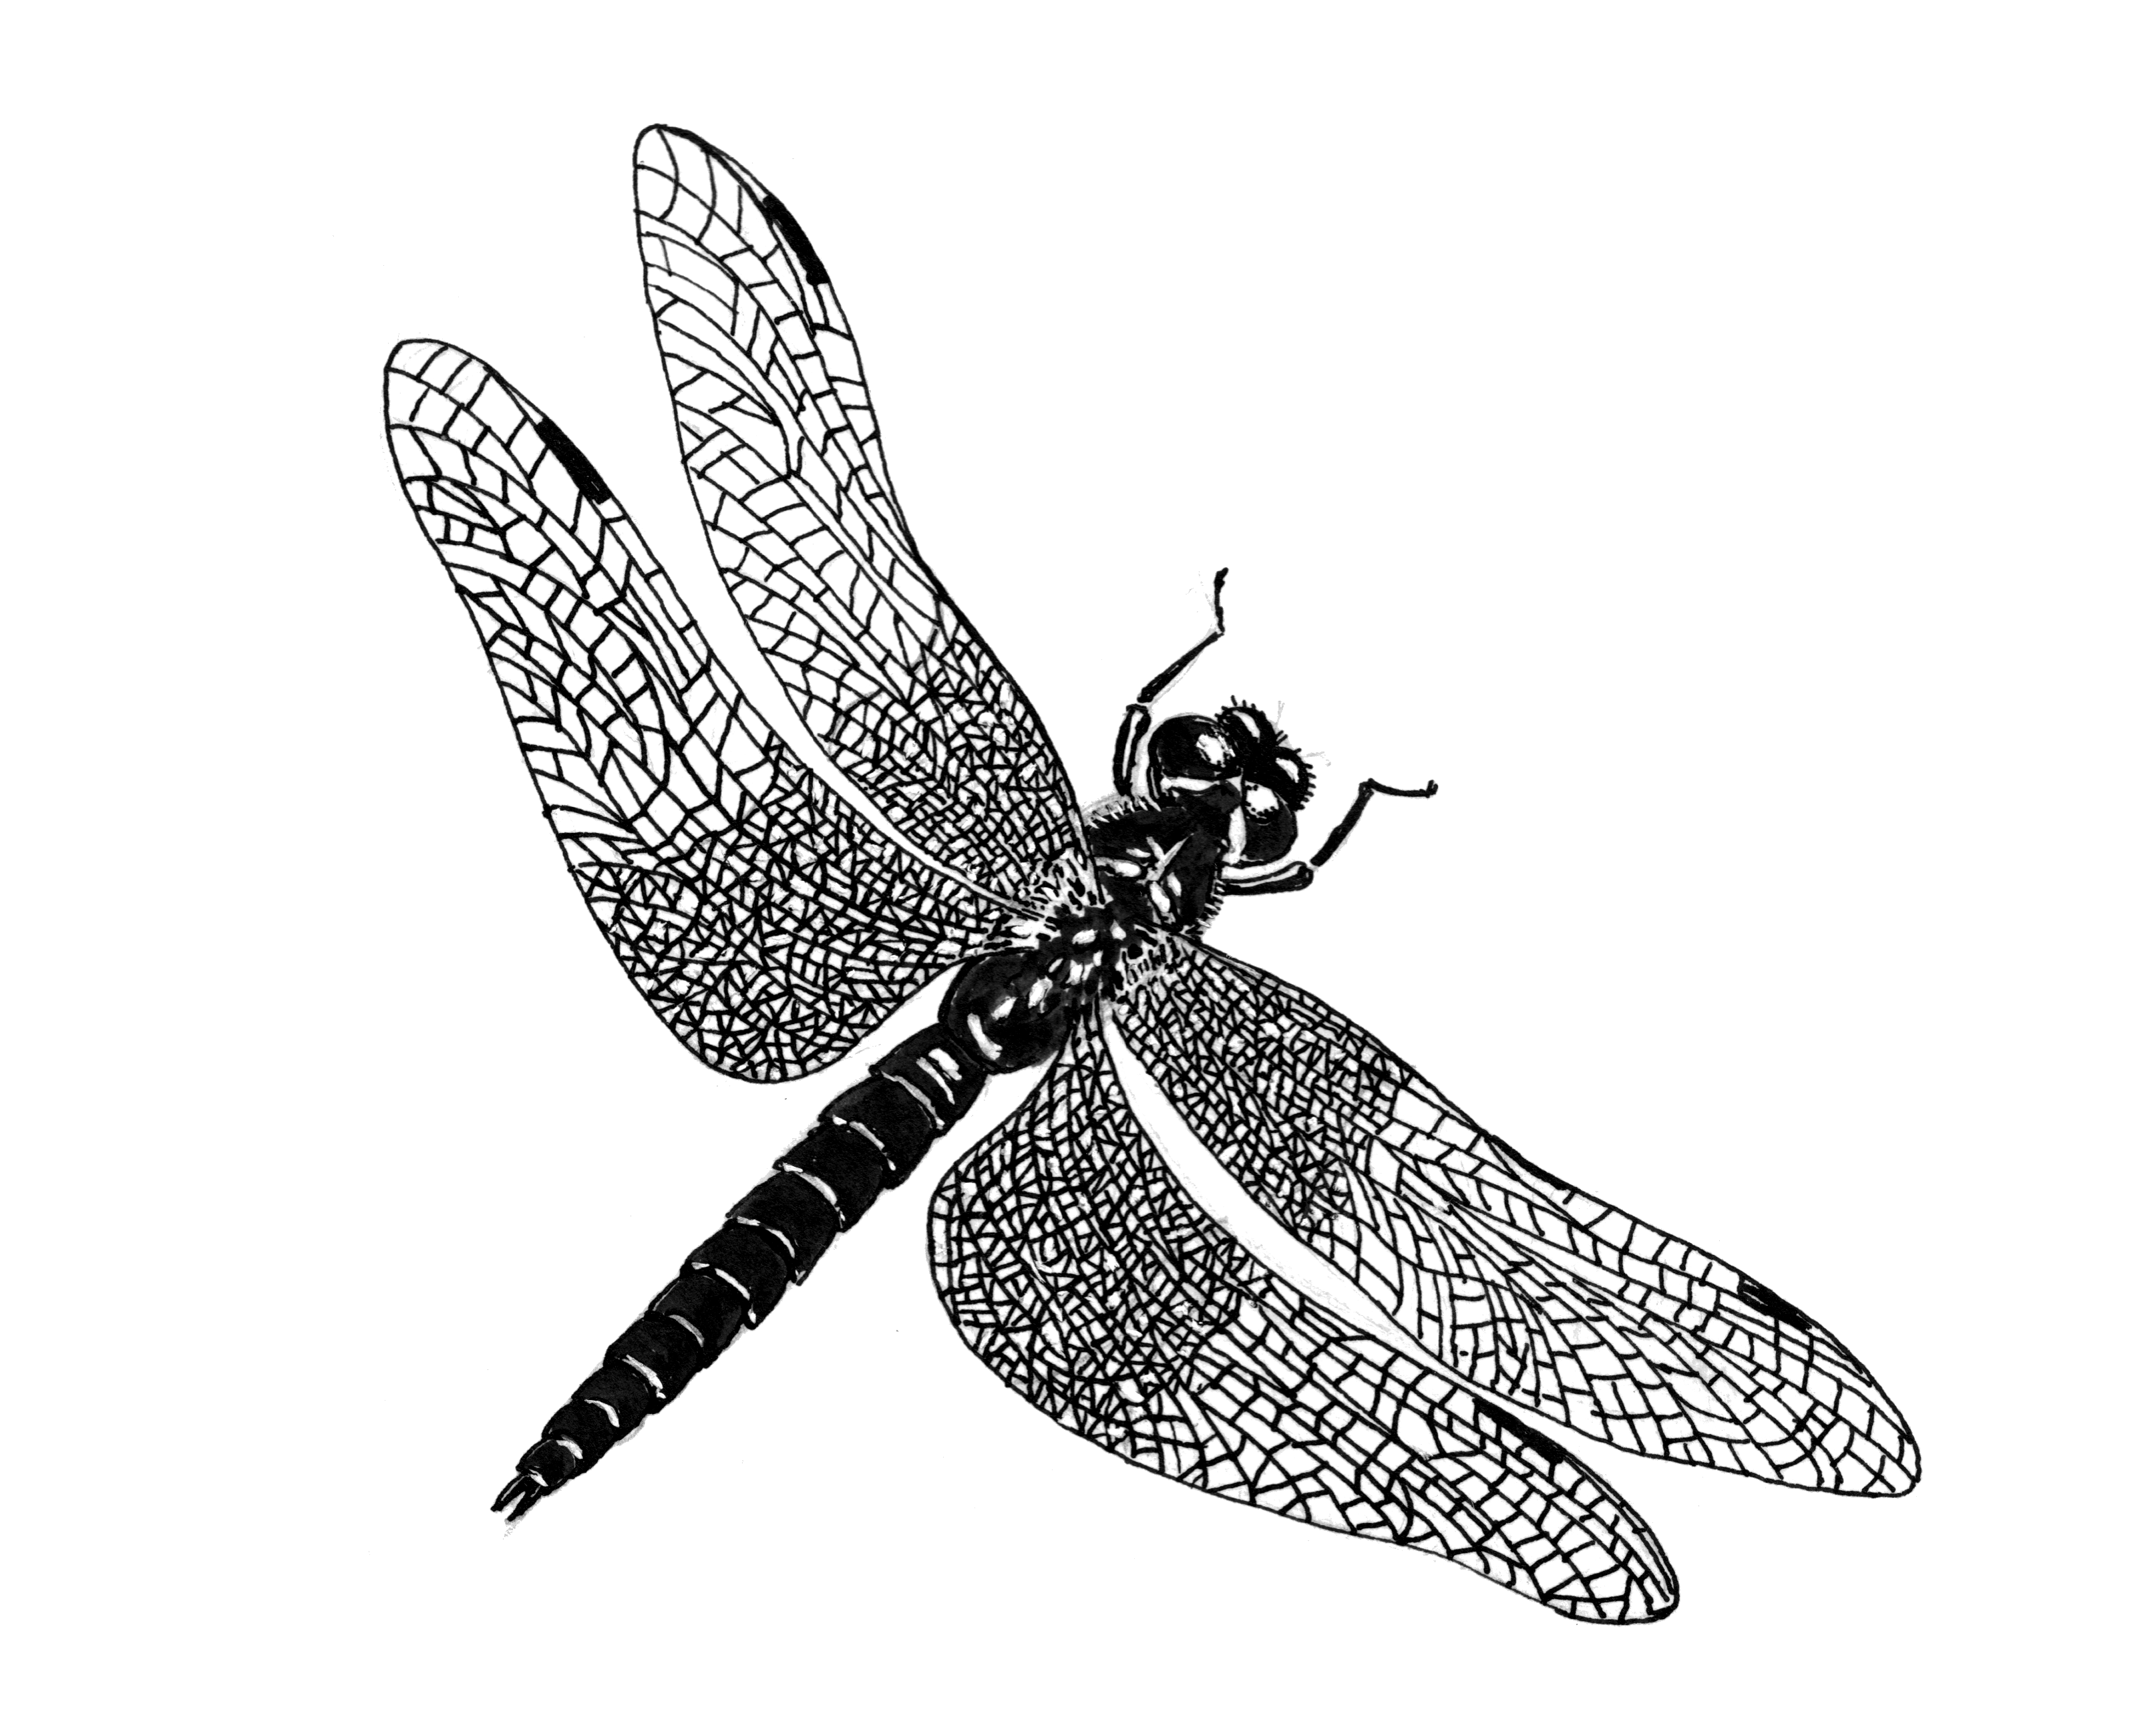 File:Dragonfly 3 (PSF).png - Dragonfly PNG